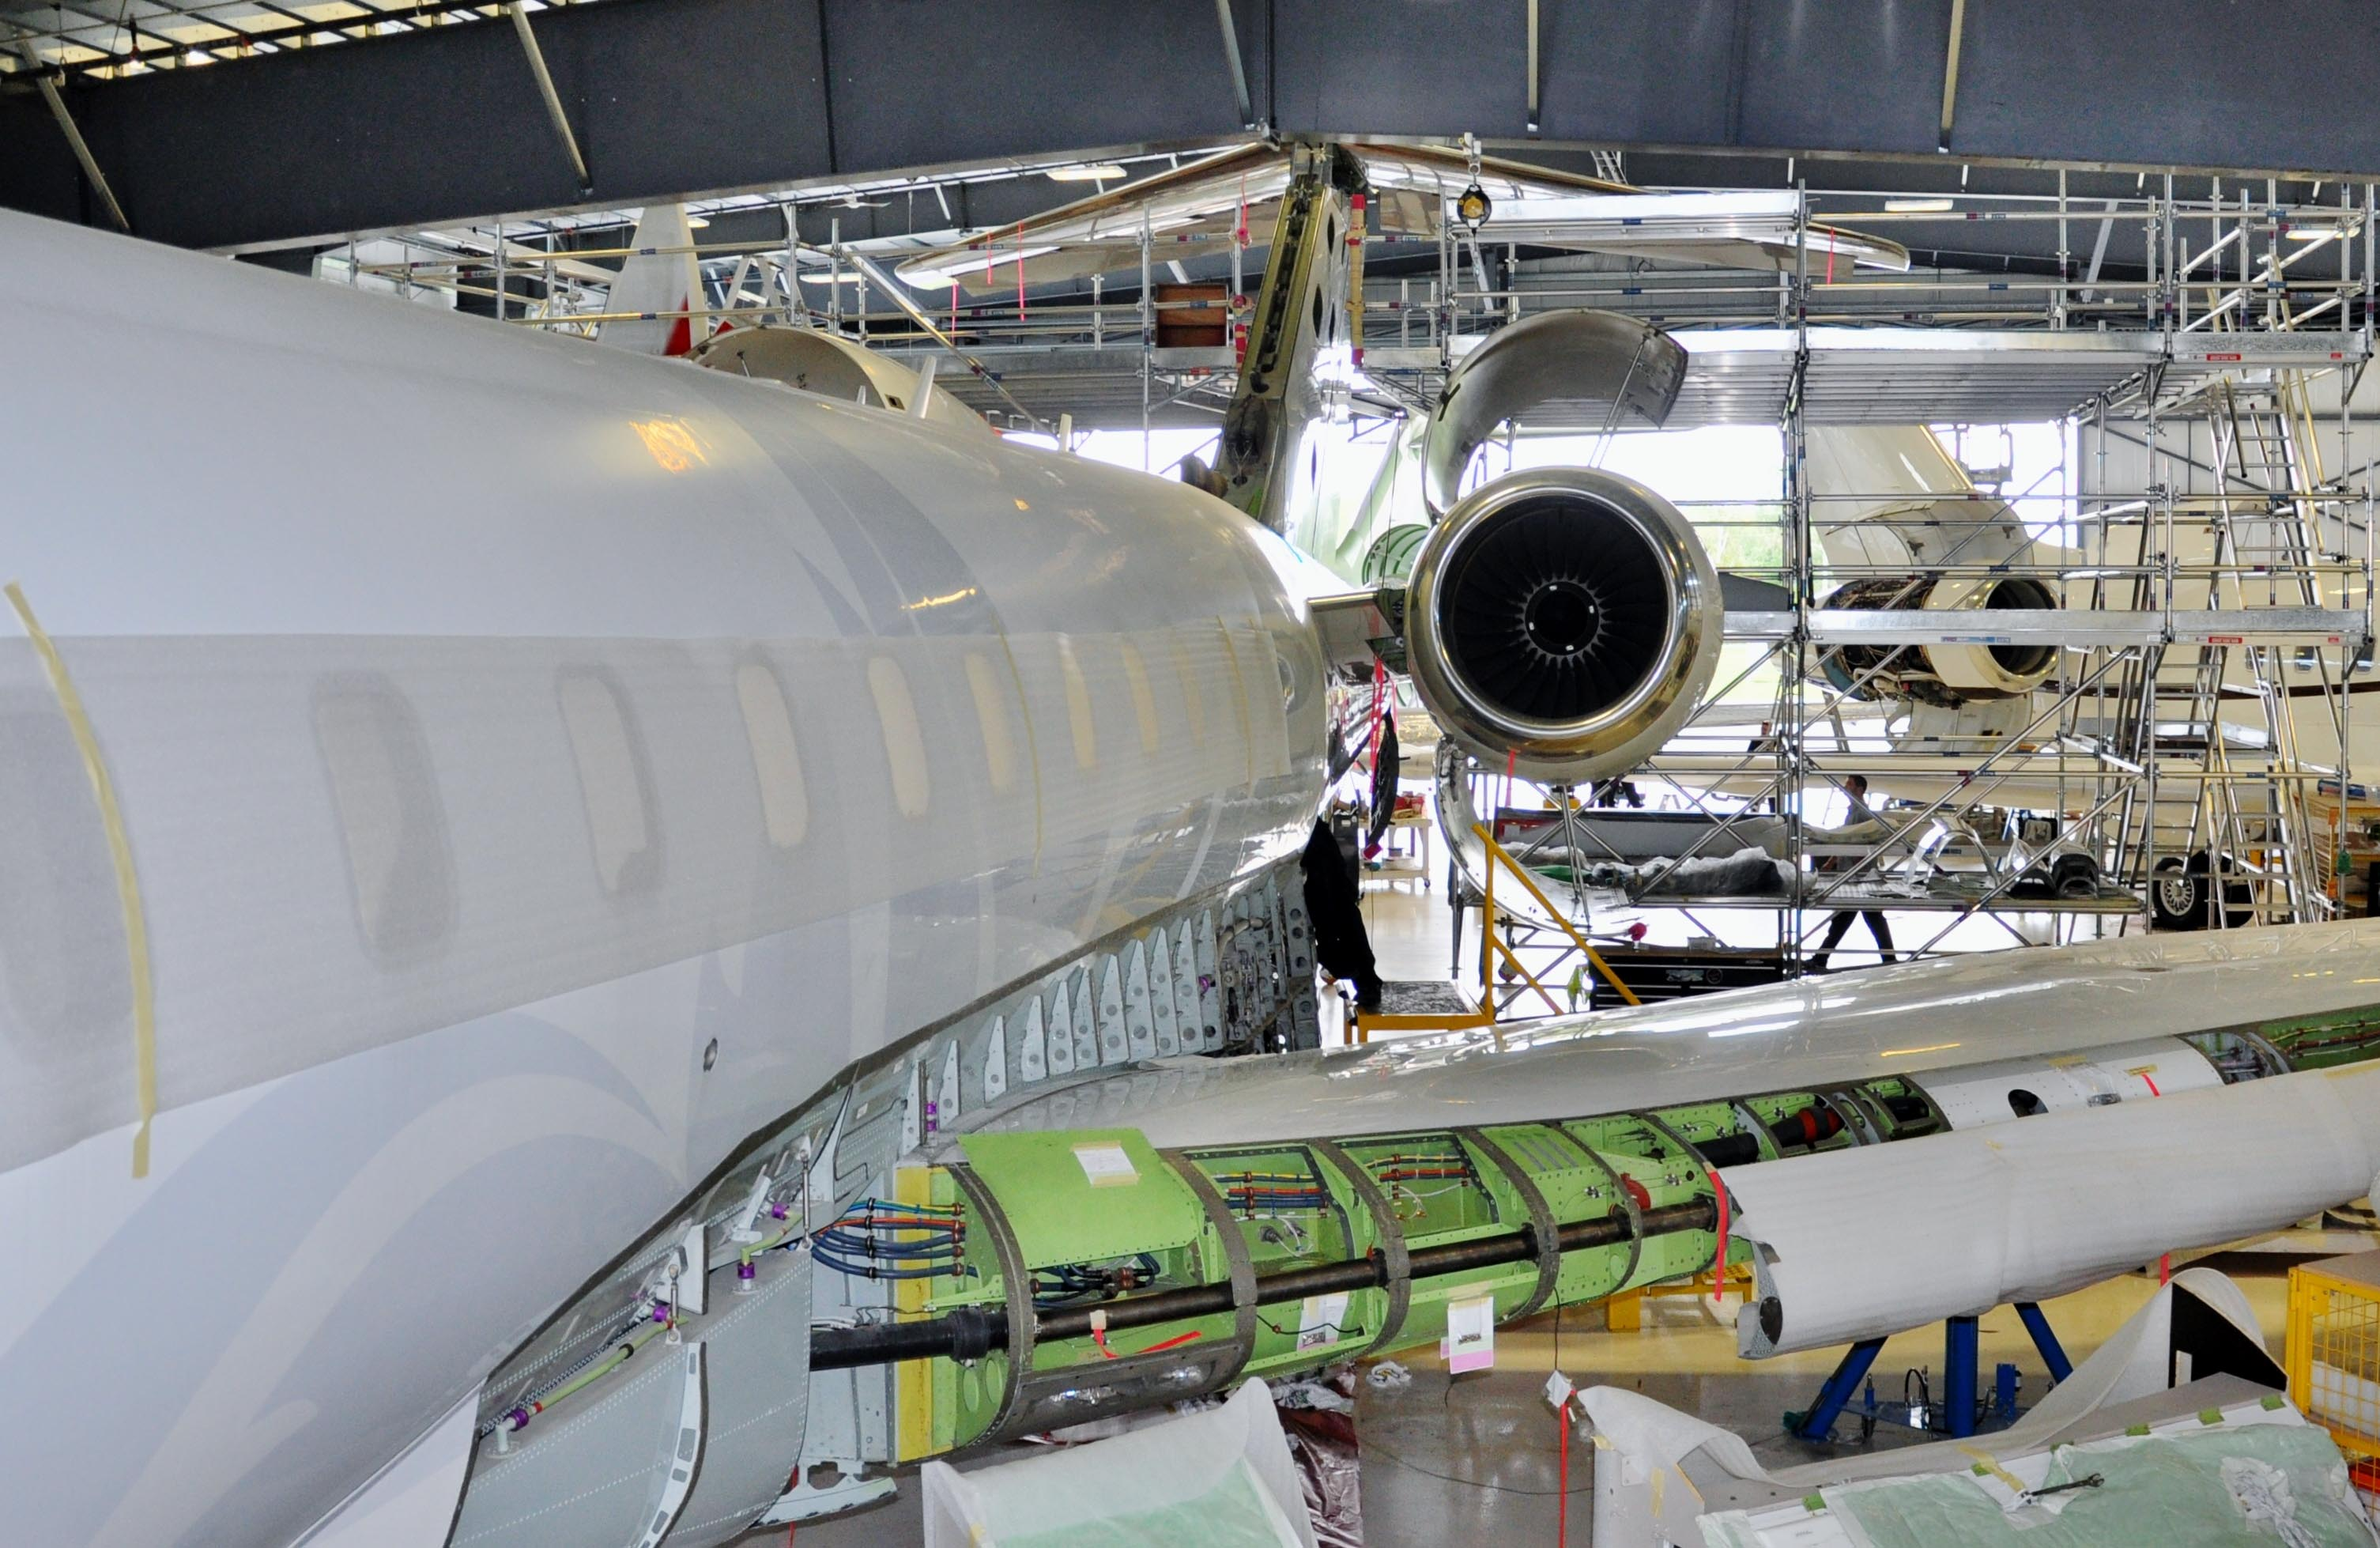 Bombardier Global jet sits in hanger